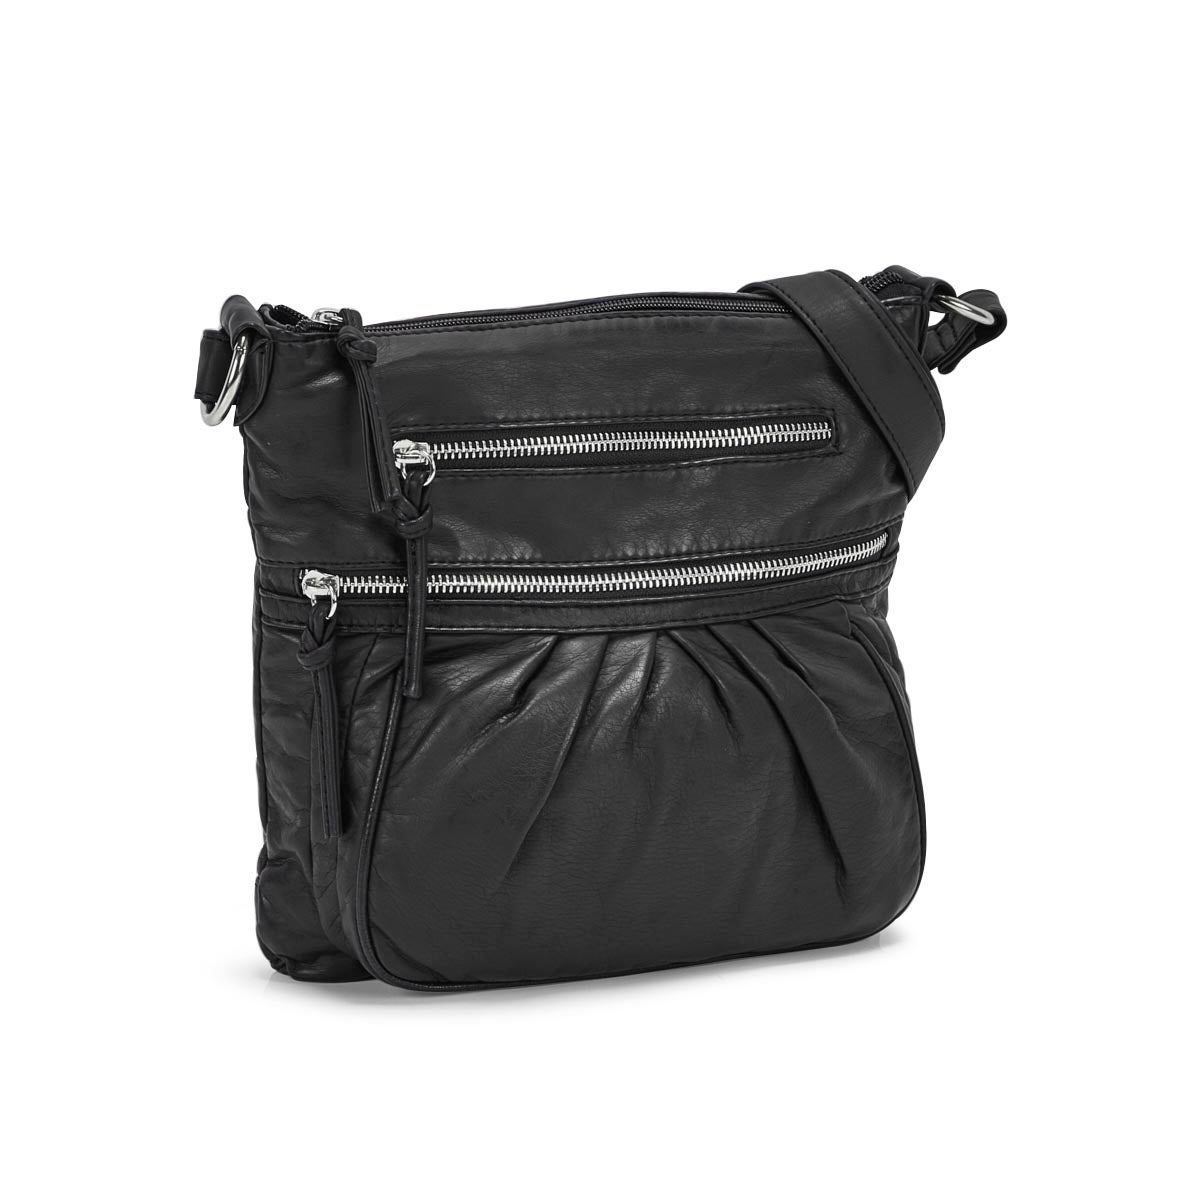 Lds black pearlized large crossbody bag